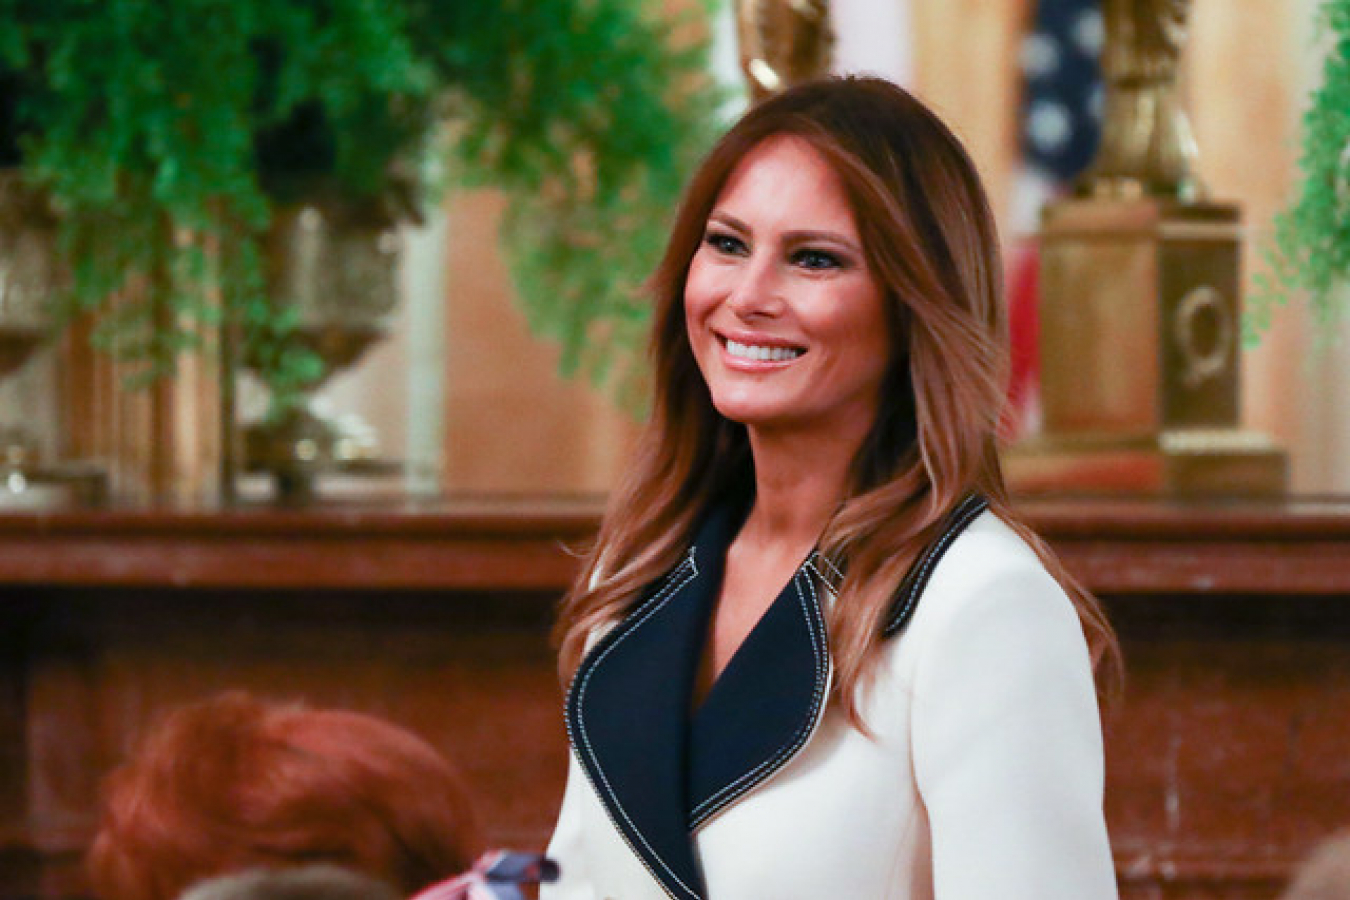 First Lady Melania Trump during Polish President visit